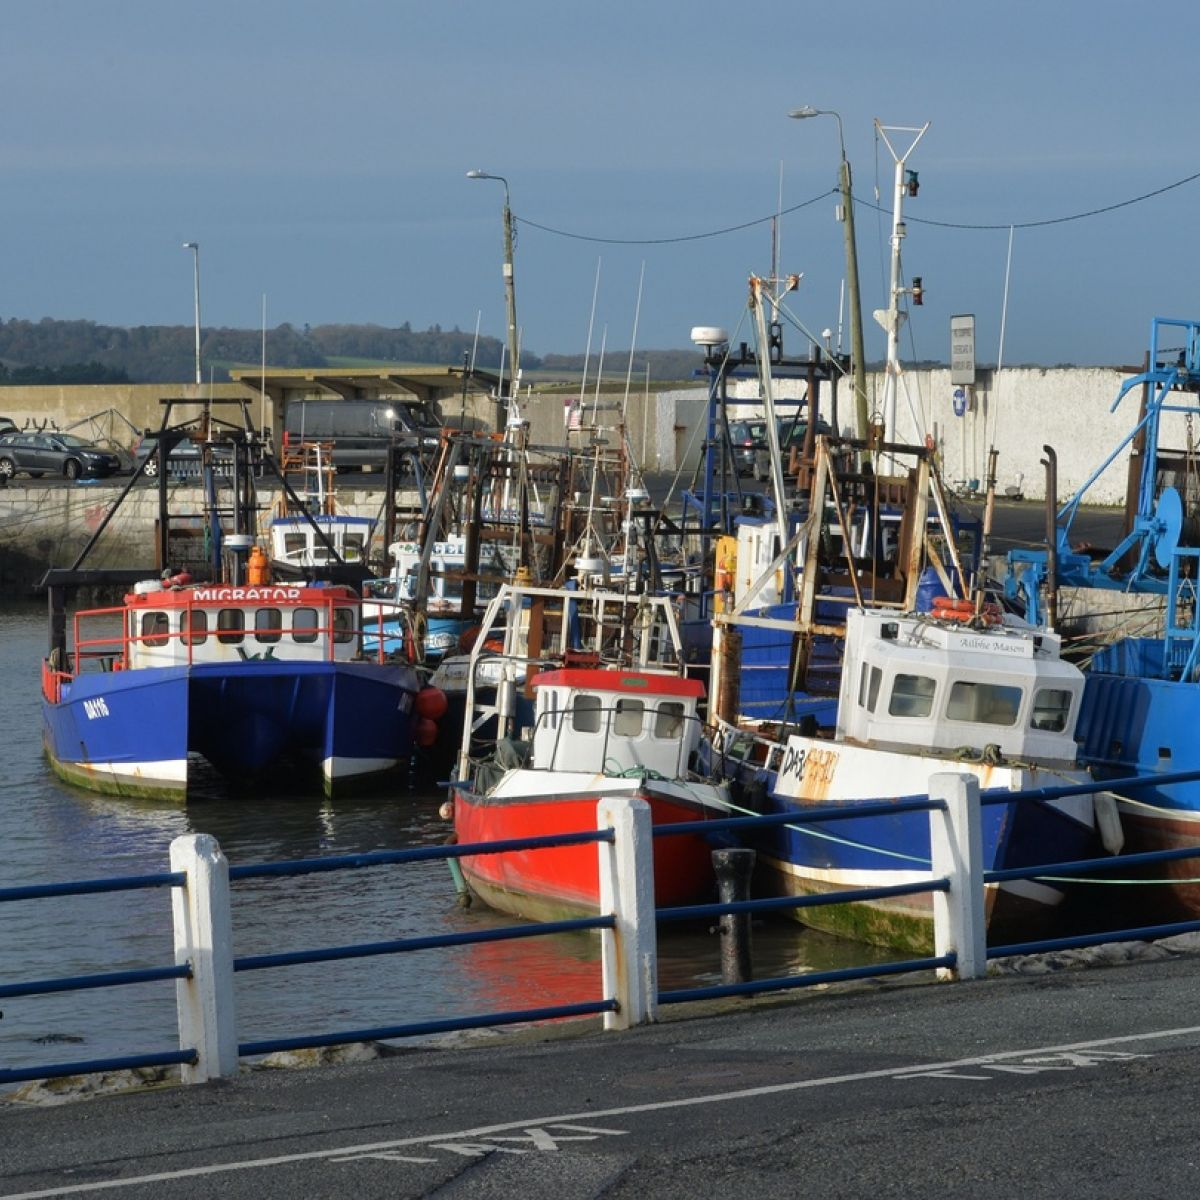 Outdoor Dublin | Skerries | UPDATED June 2020 - TripAdvisor